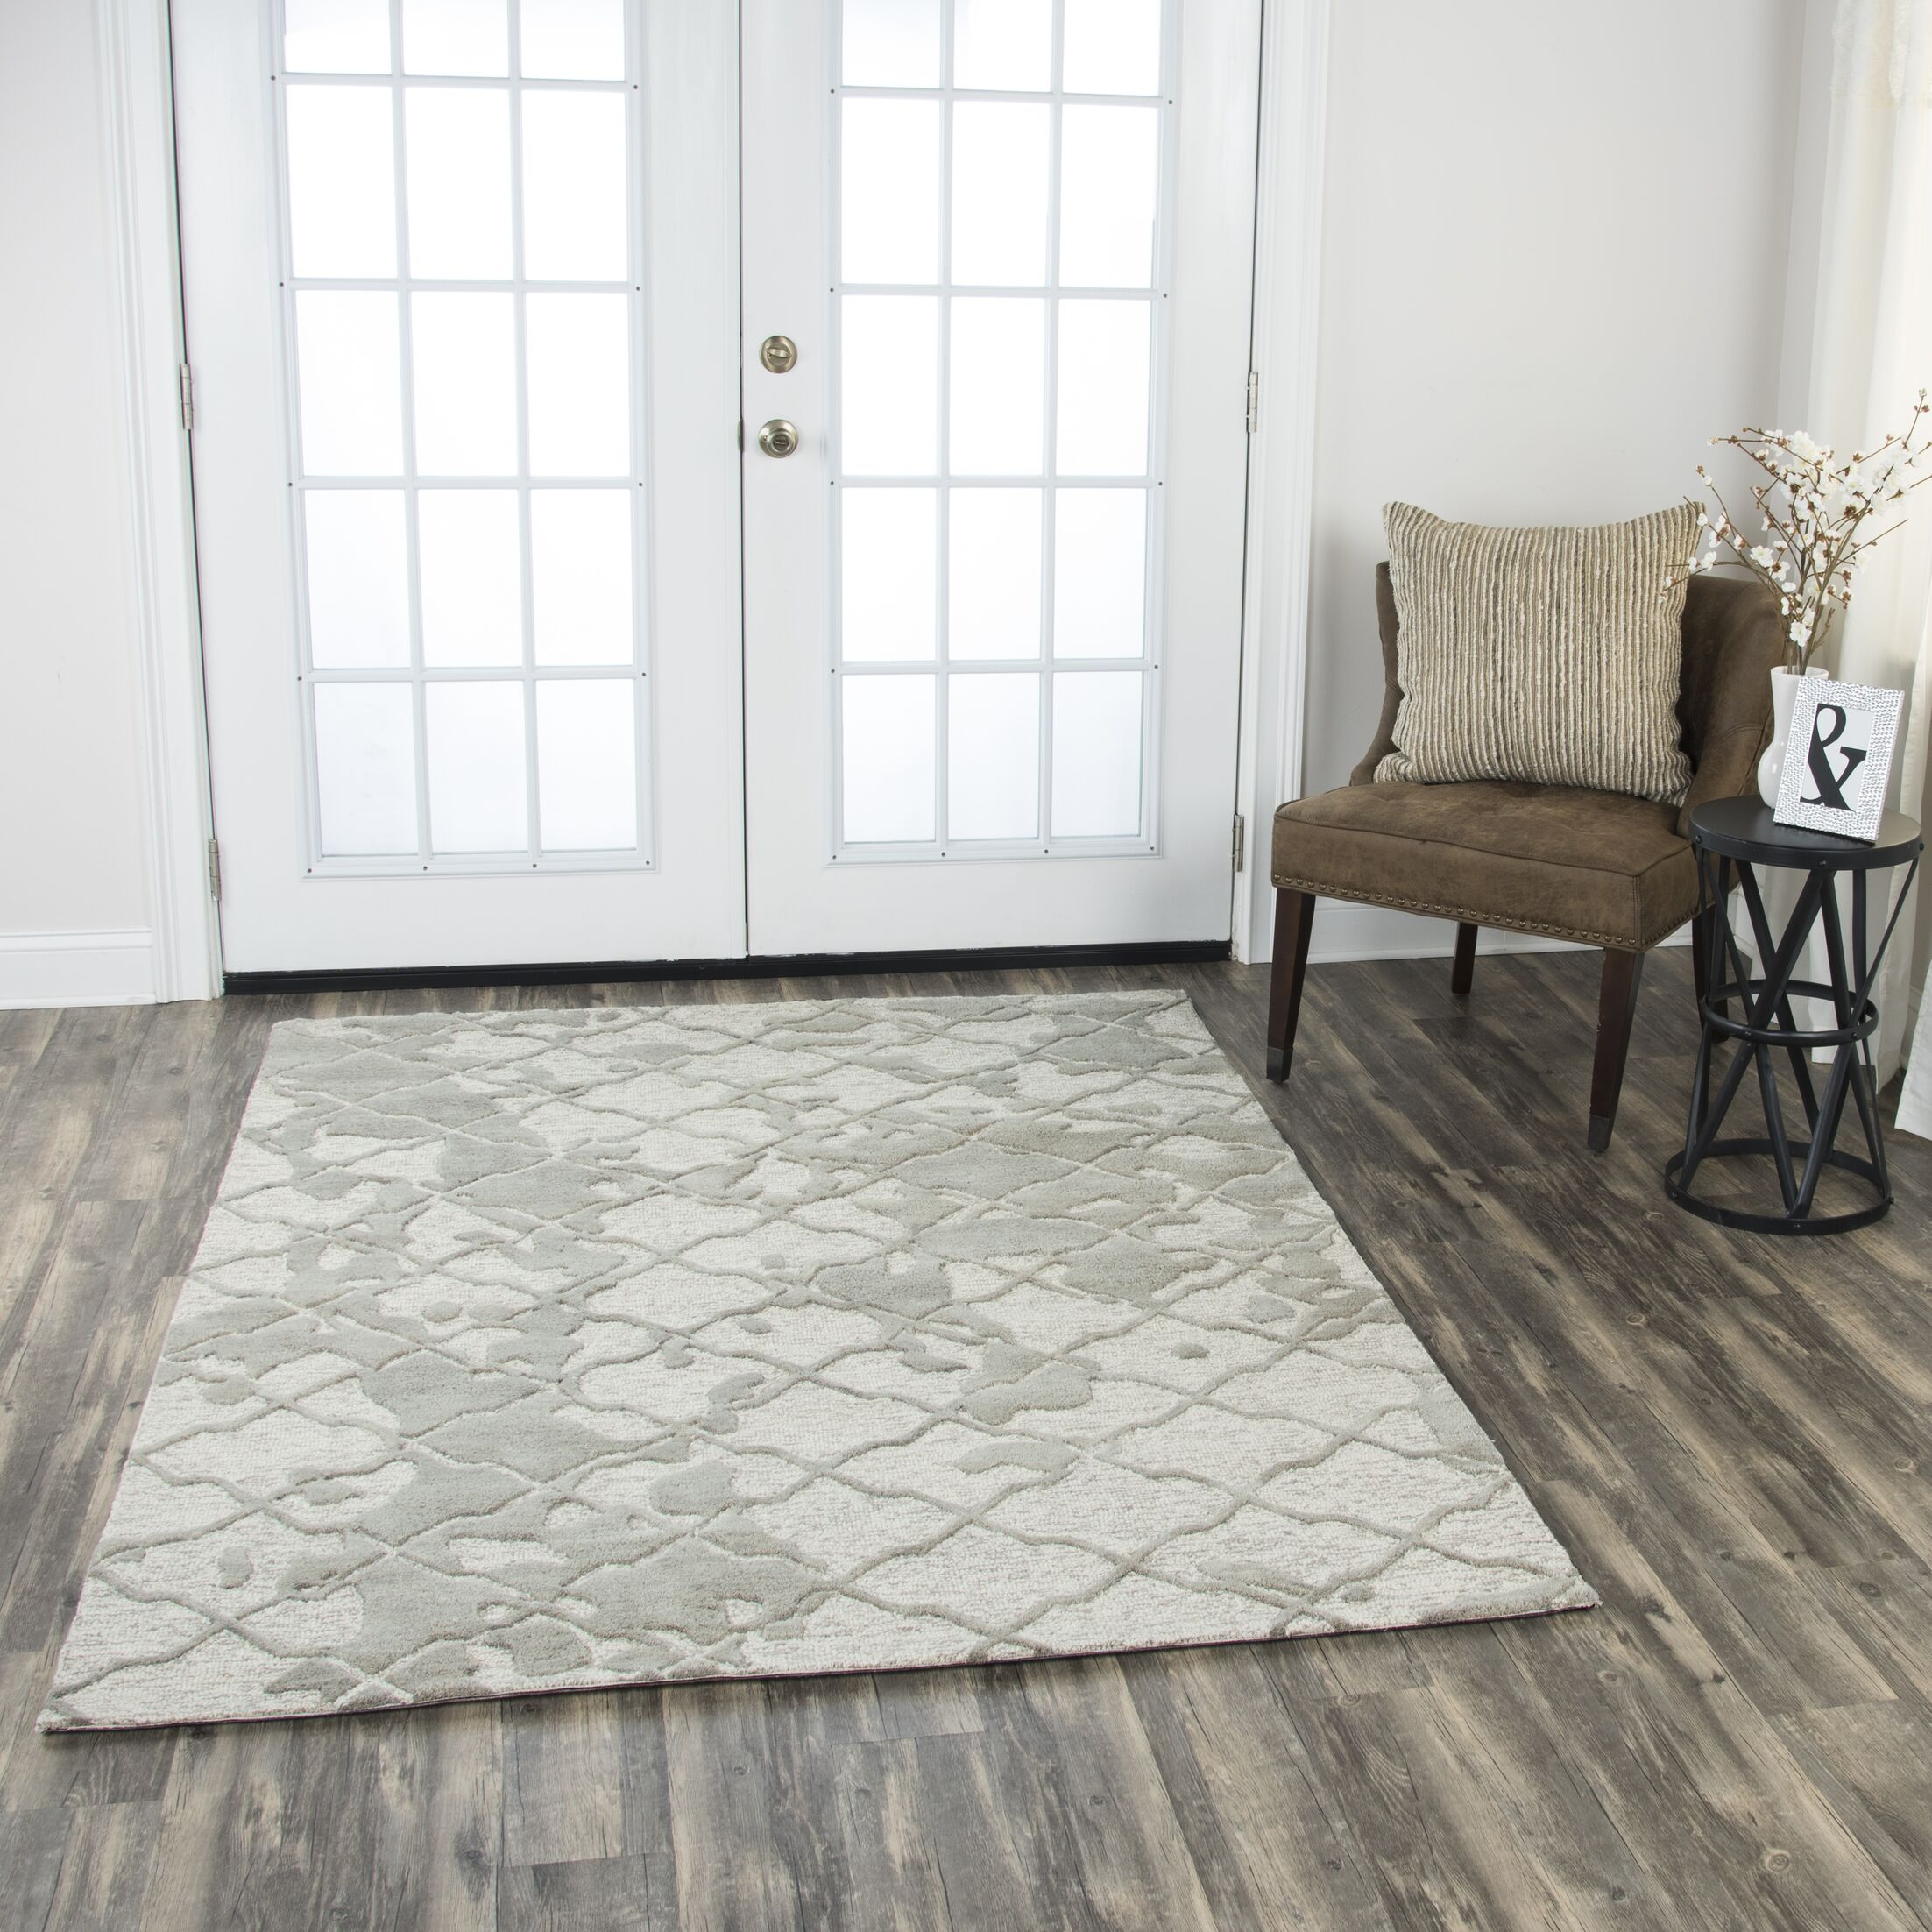 Laoise Hand-Tufted Wool Gray Area Rug Rug Size: 8' x 10'